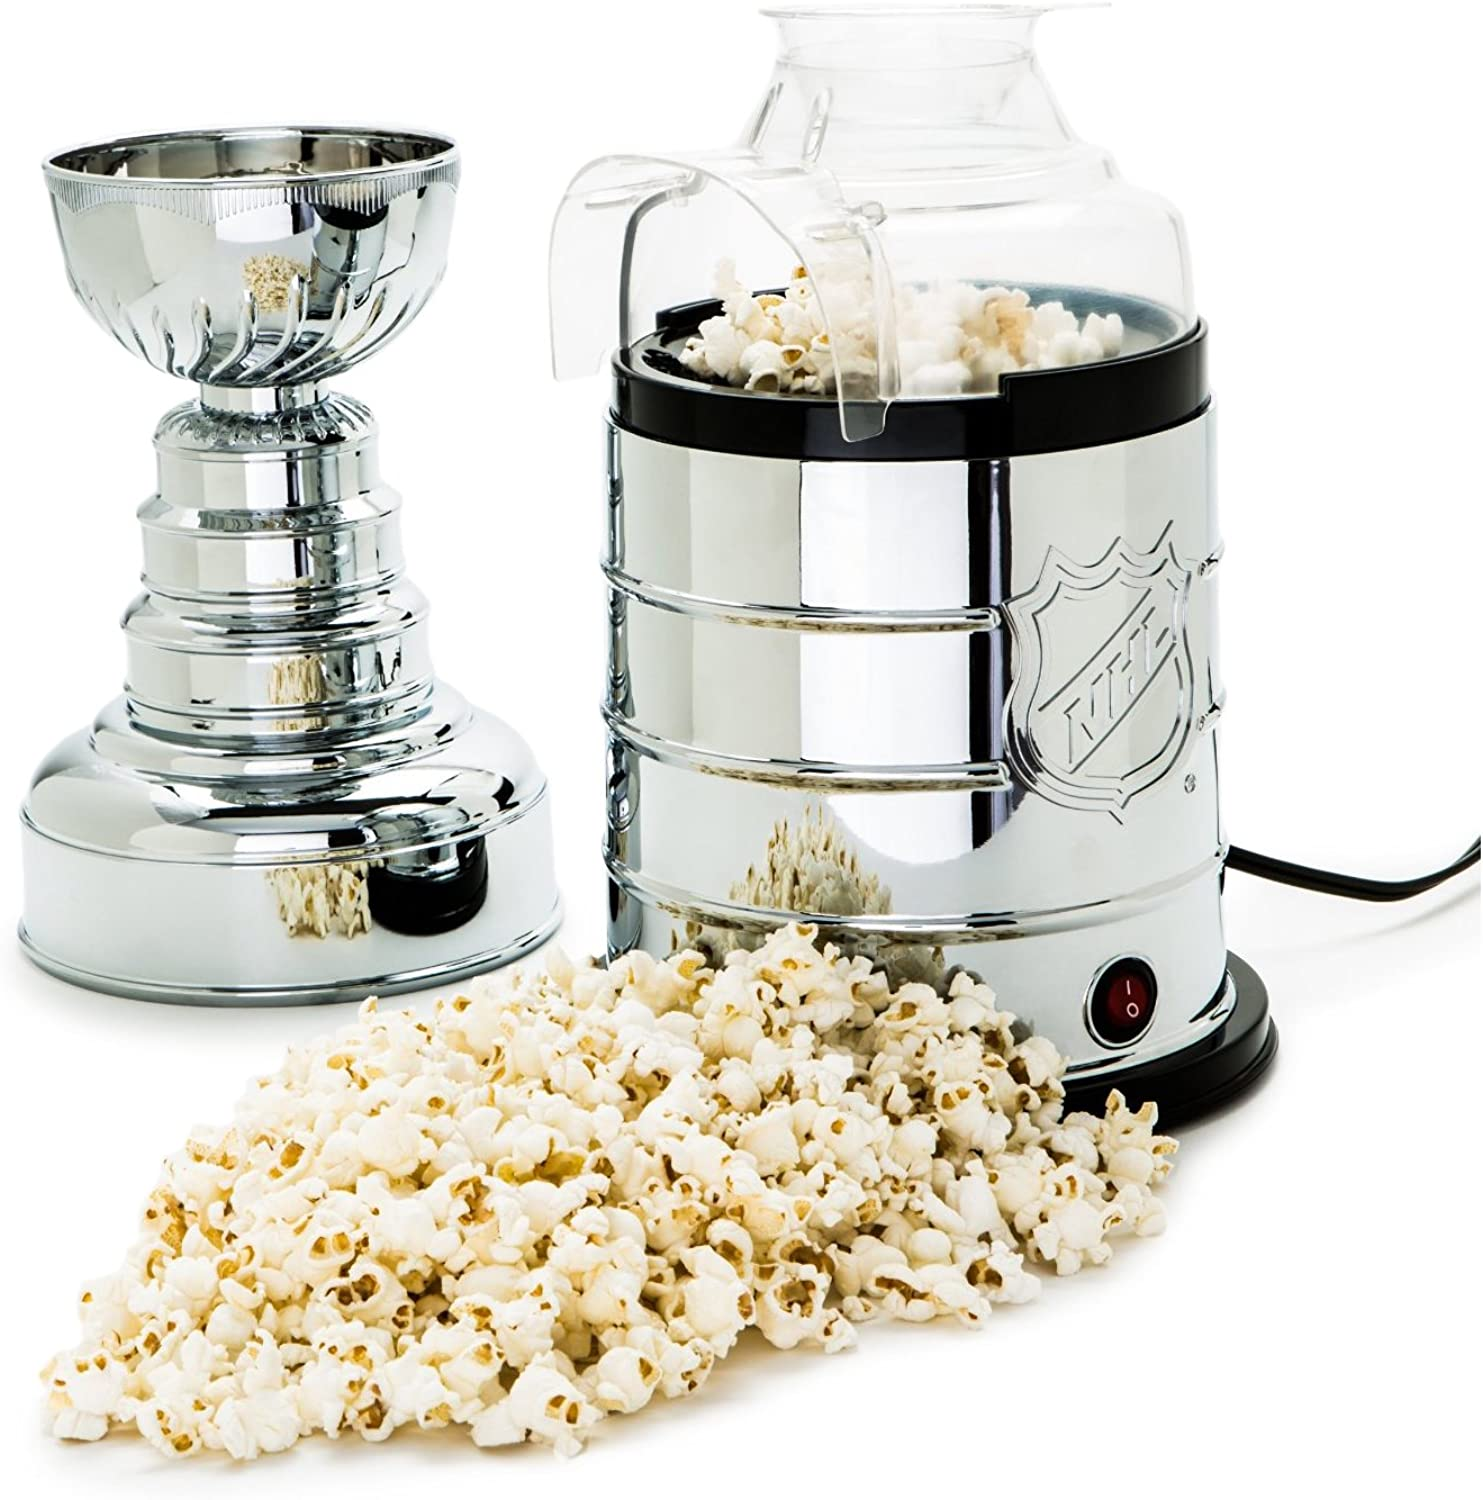 NHL League Logo Stanley Cup Hot Air Popcorn Popper